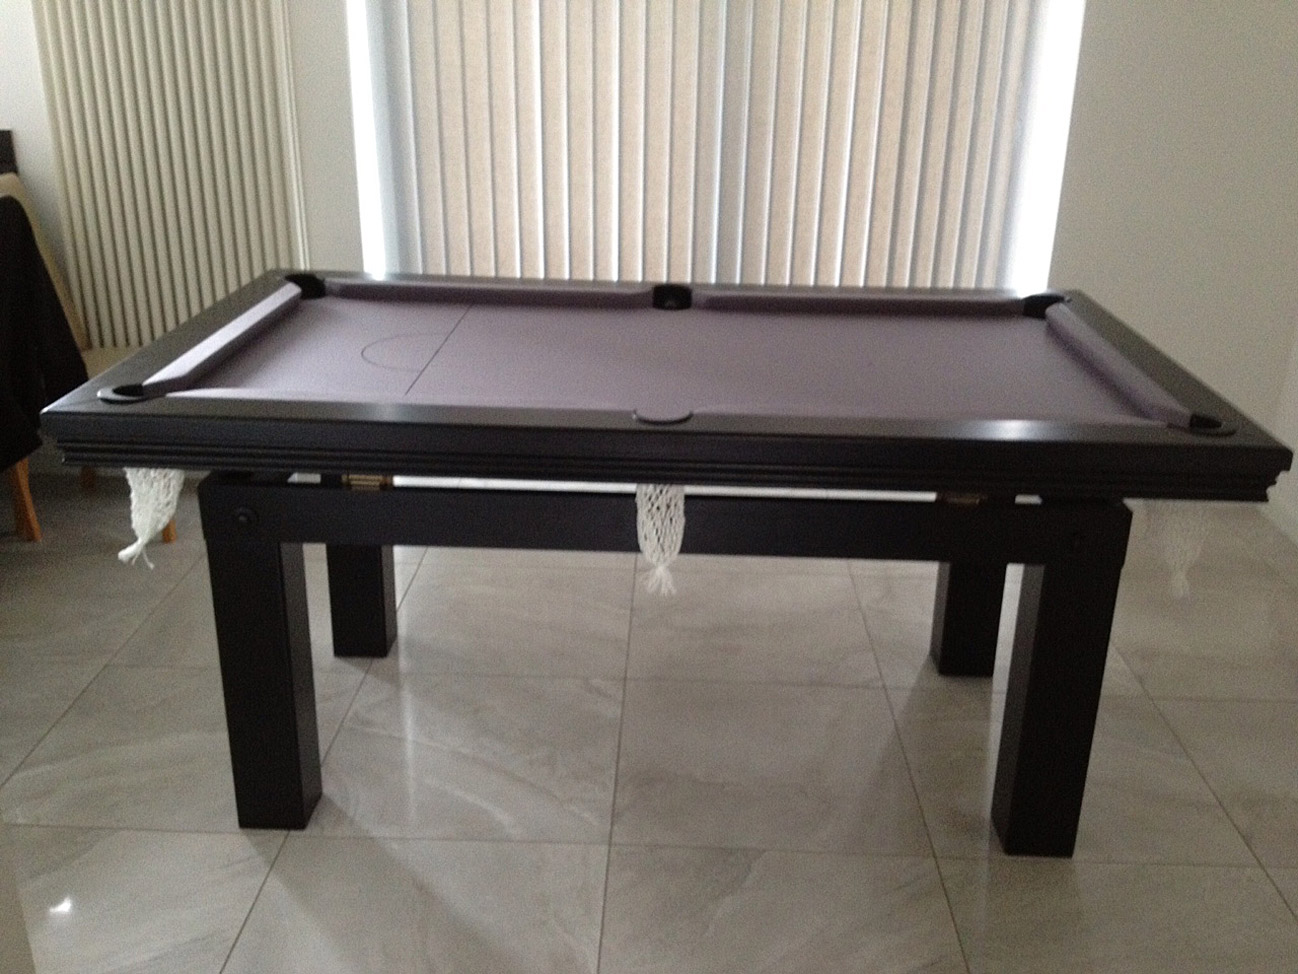 Pool Dining Table in Black Silver Snooker amp Pool Tables : 1602 from www.snookerandpooltablecompany.com size 1298 x 974 jpeg 316kB